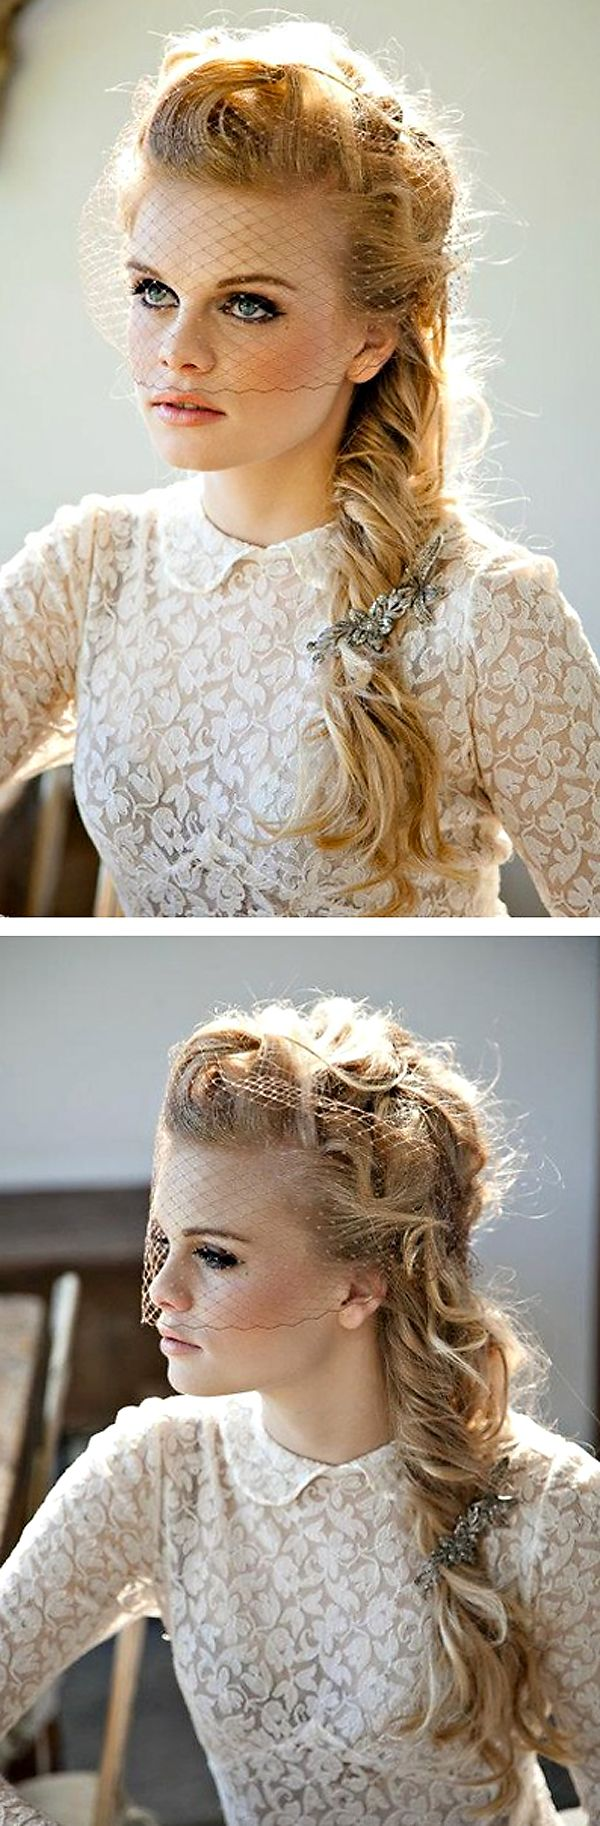 Fave! Love the soft, long, perfectly imperfect wedding hair braid